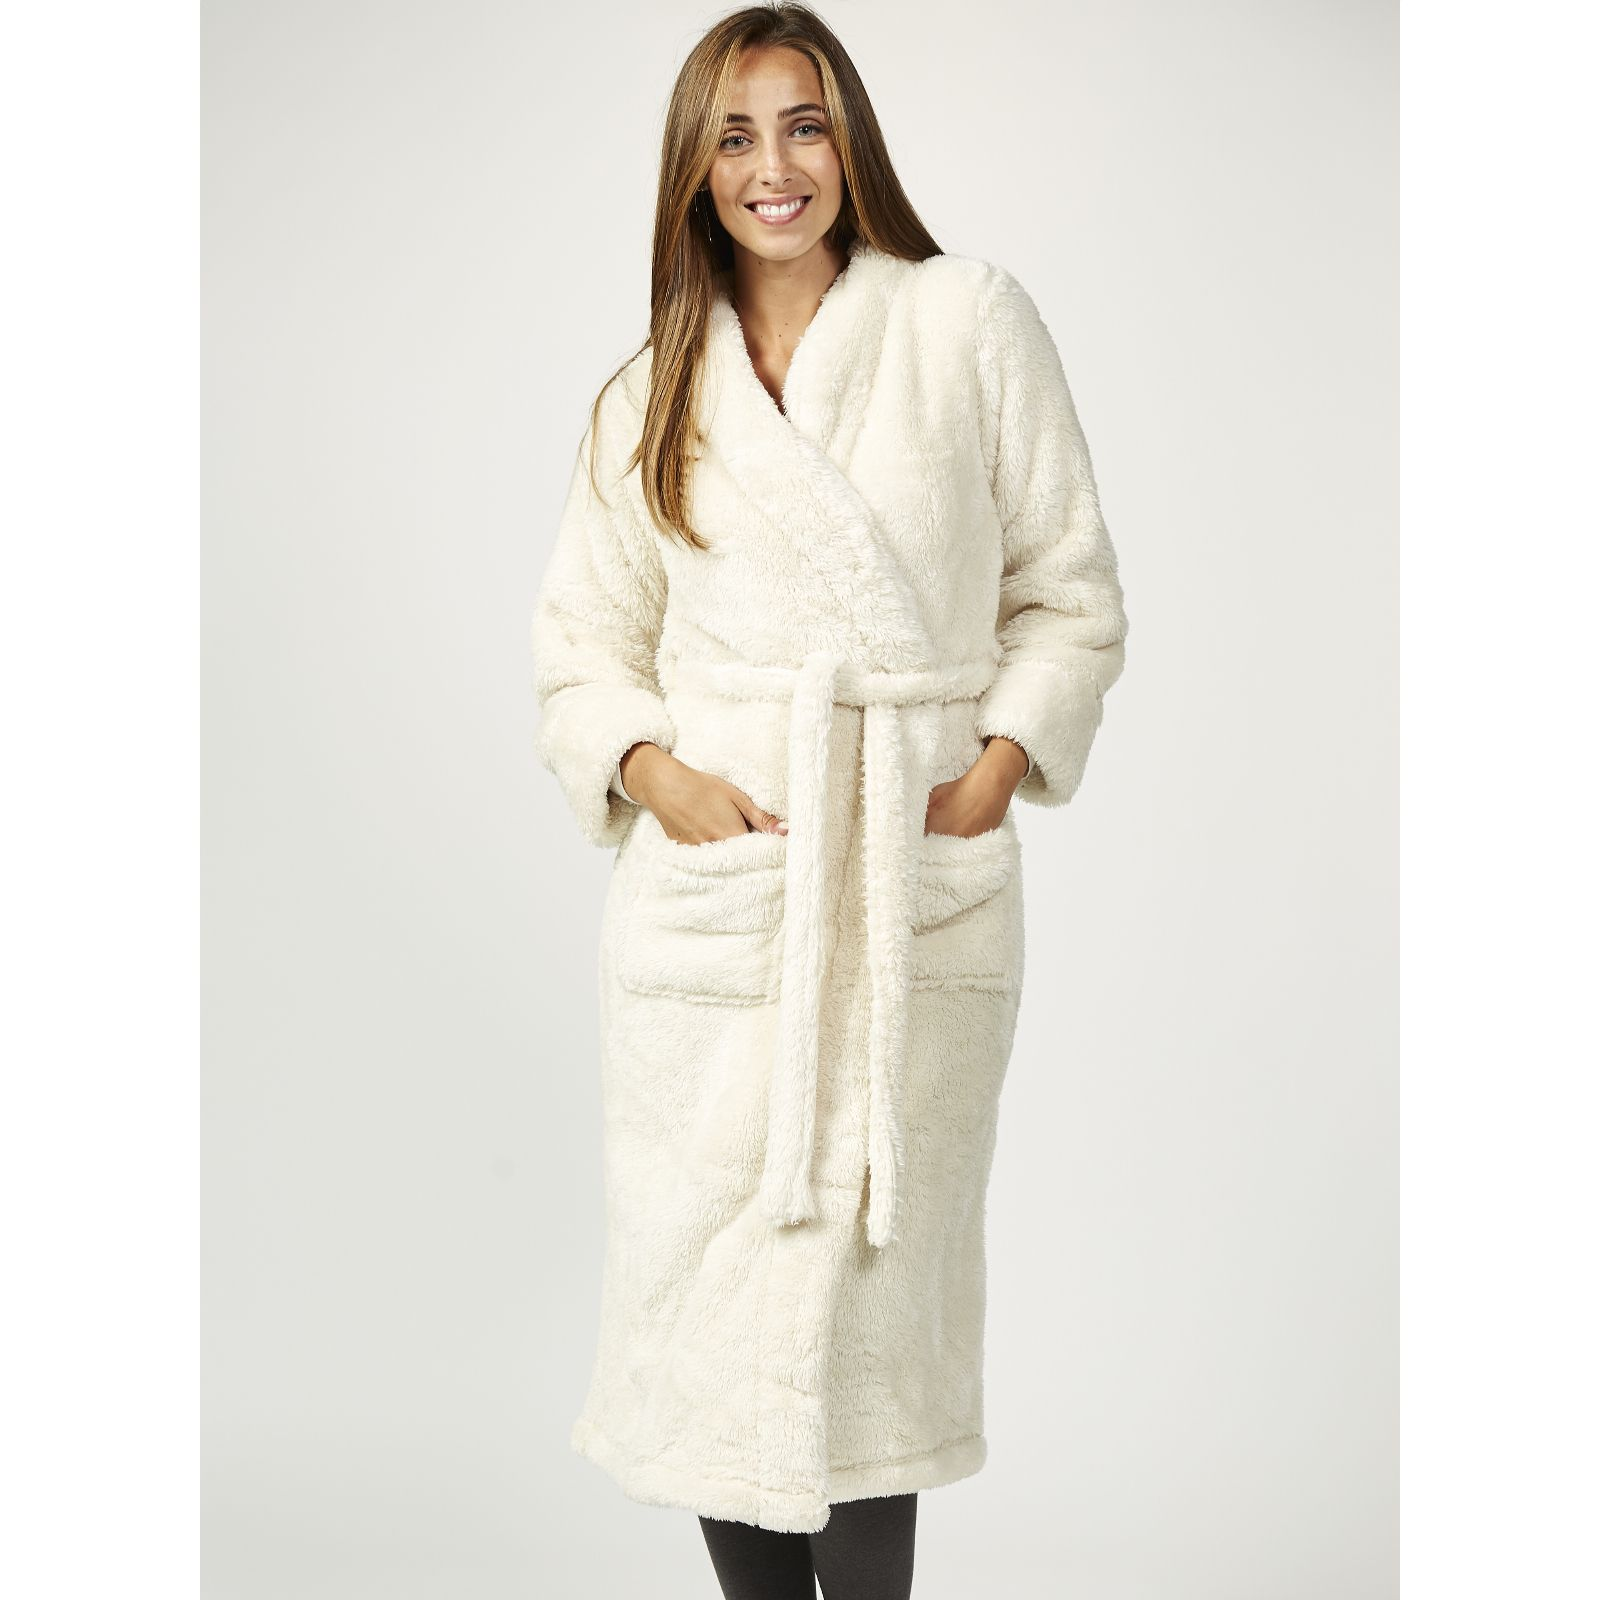 2a6665fc56ea9 Cozee Home Ultra Fluffie Robe - QVC UK